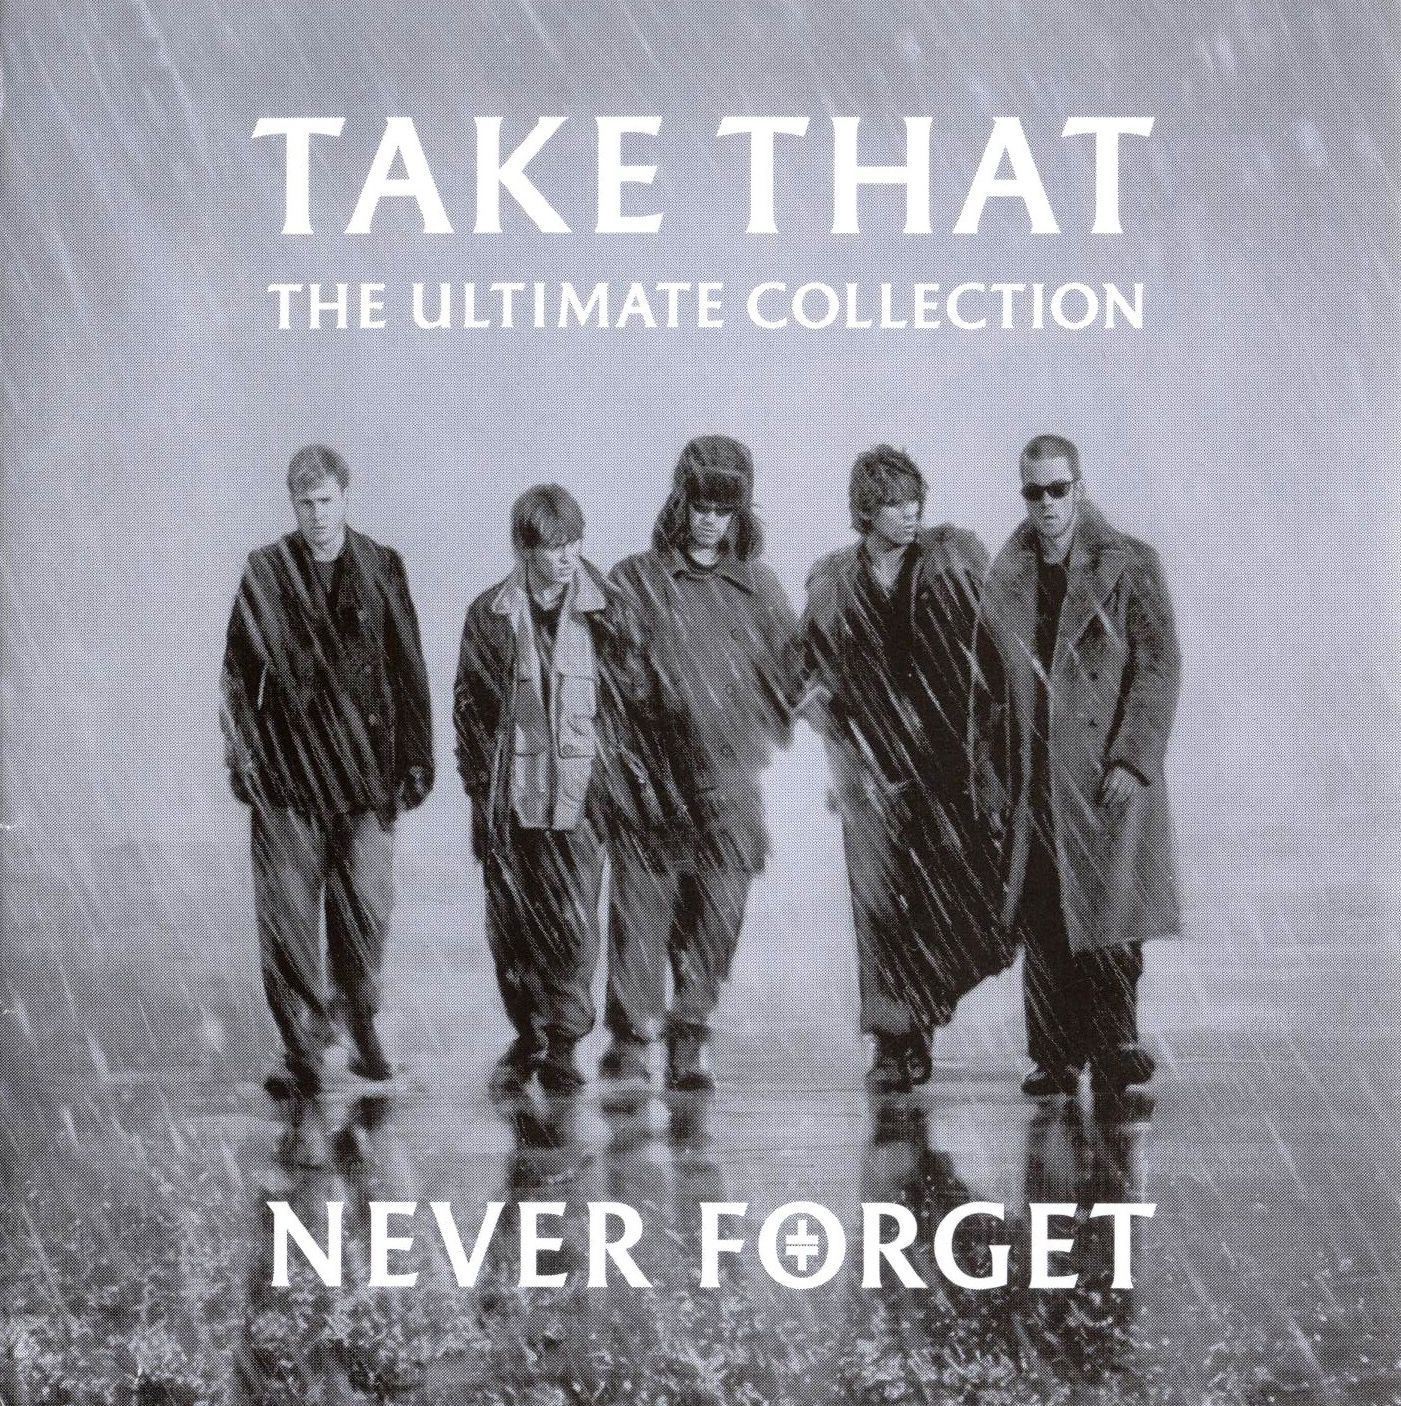 Take That - Never Forget - The Ultimate Collection album cover